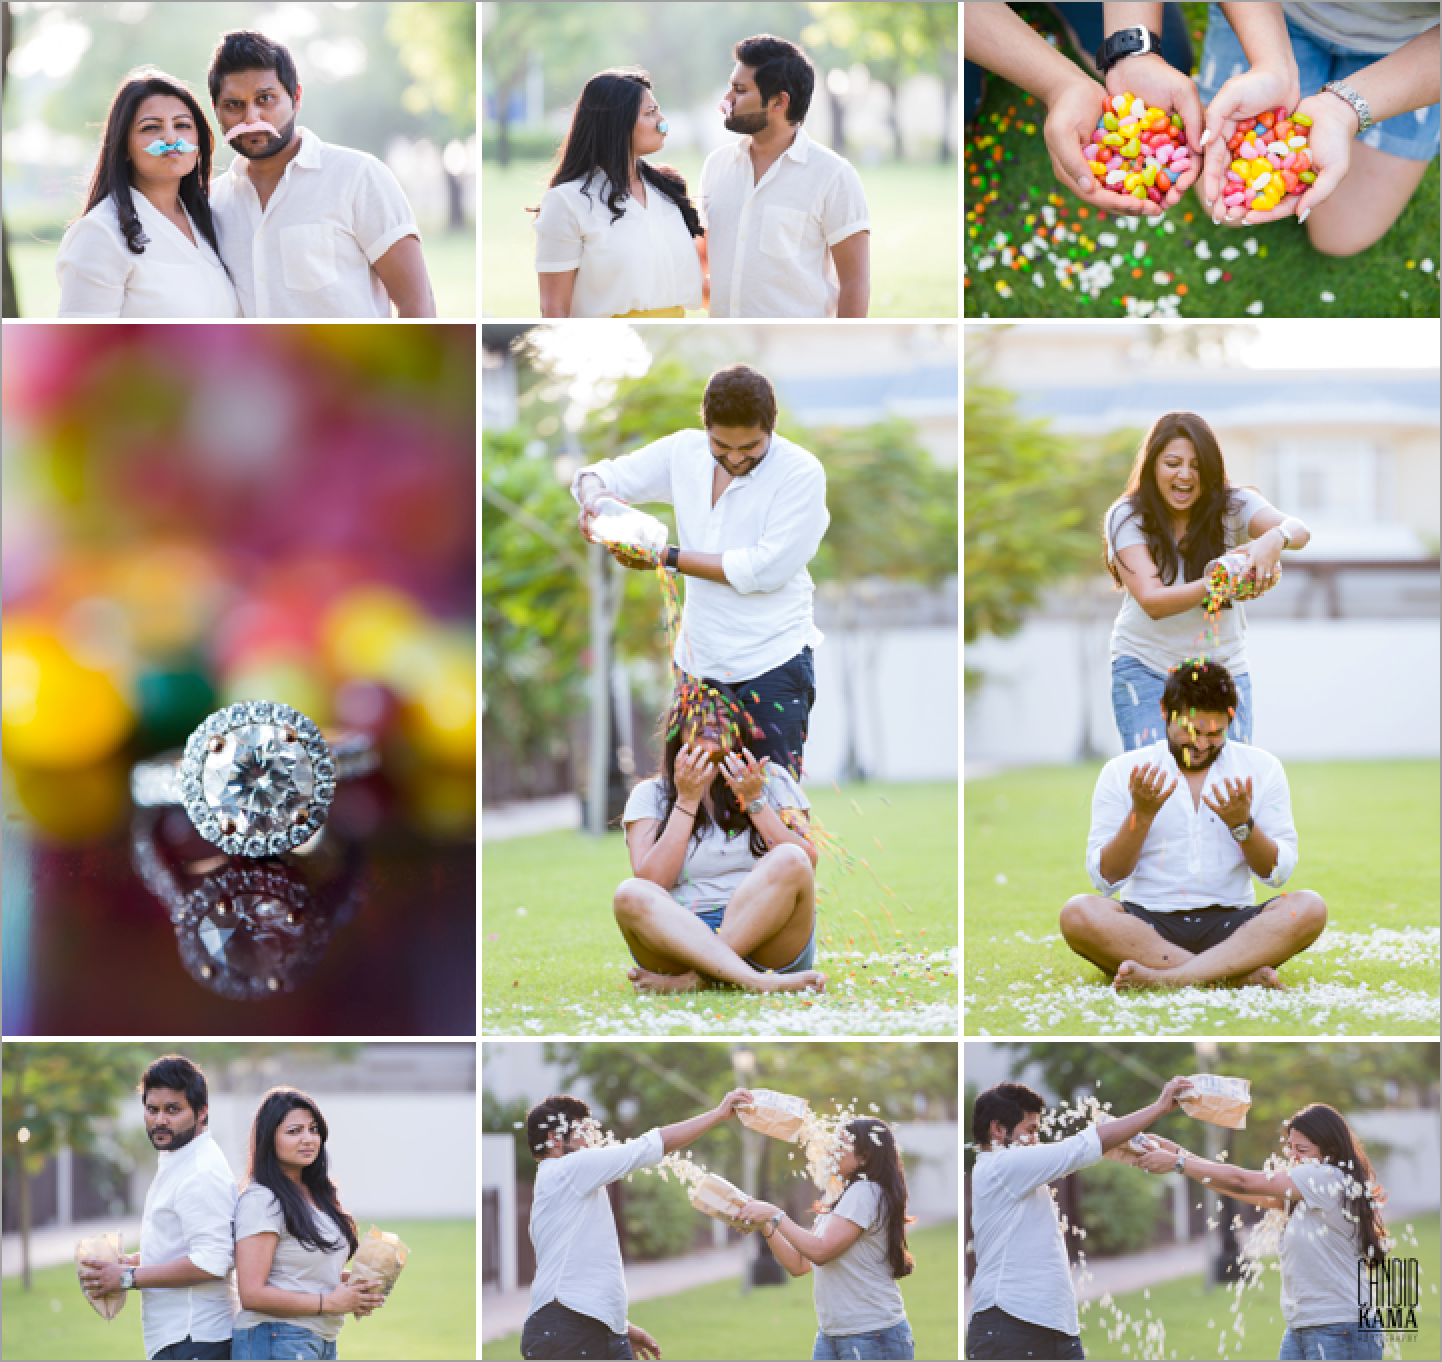 Save The Date With Candy Floss, Couple Photography